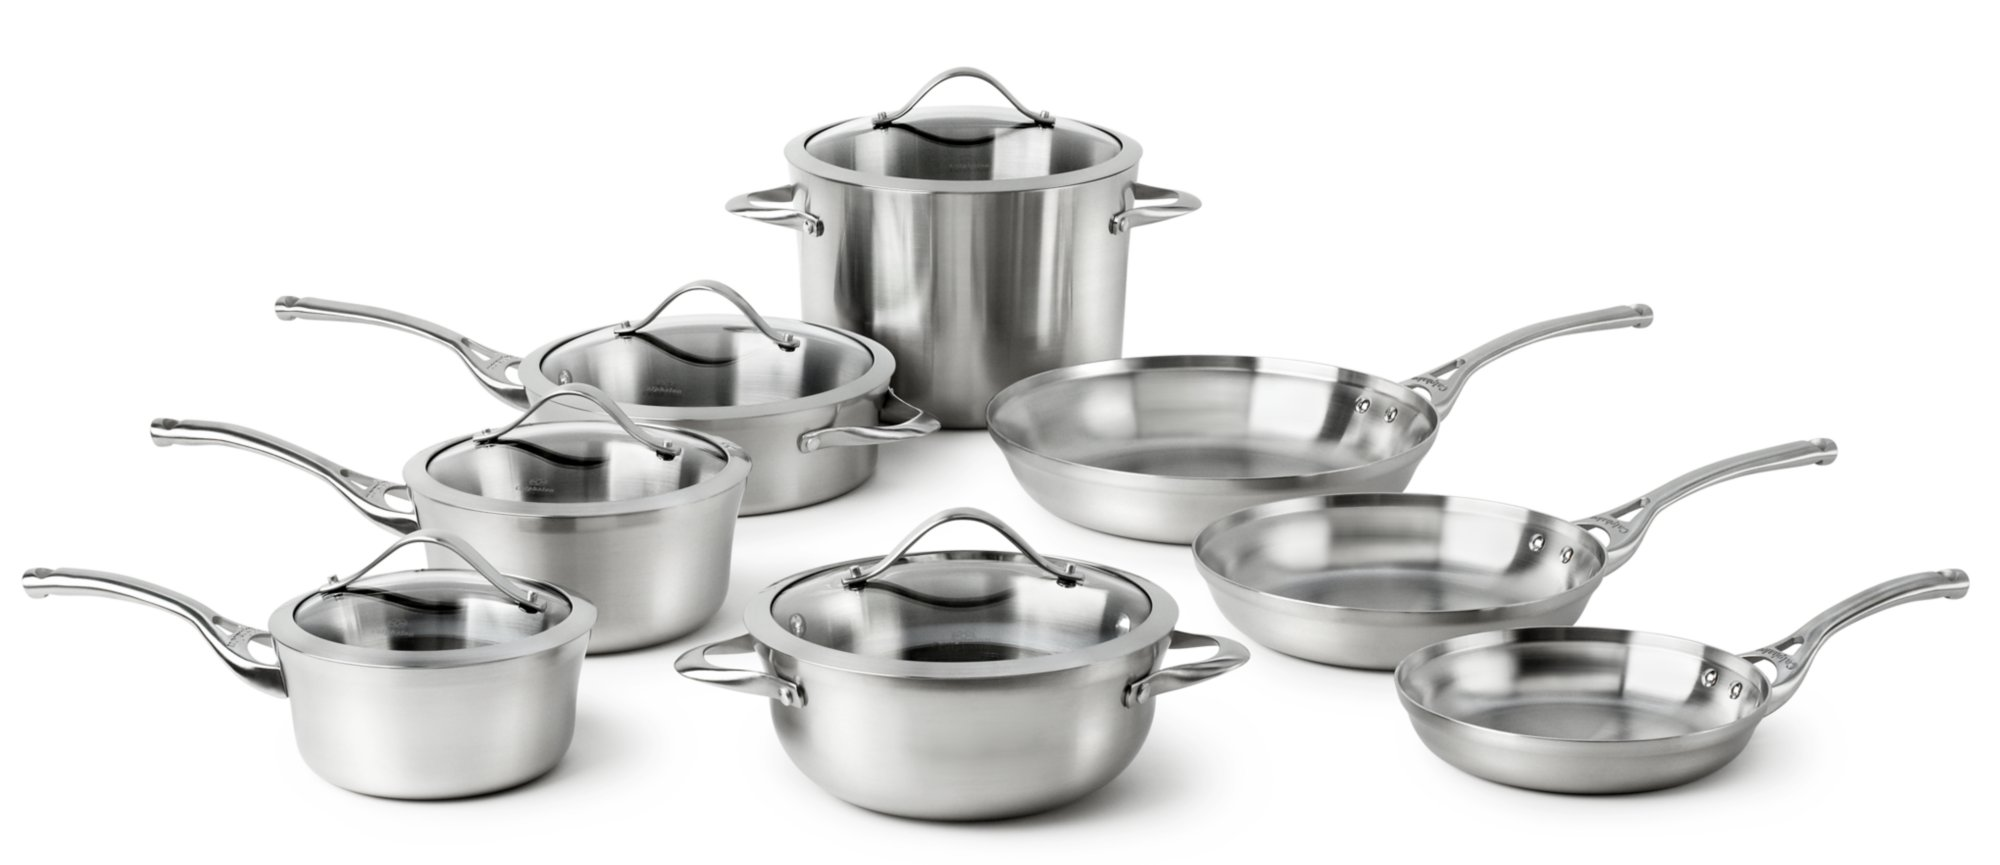 Calphalon Contemporary Stainless 13-pc. Cookware Set